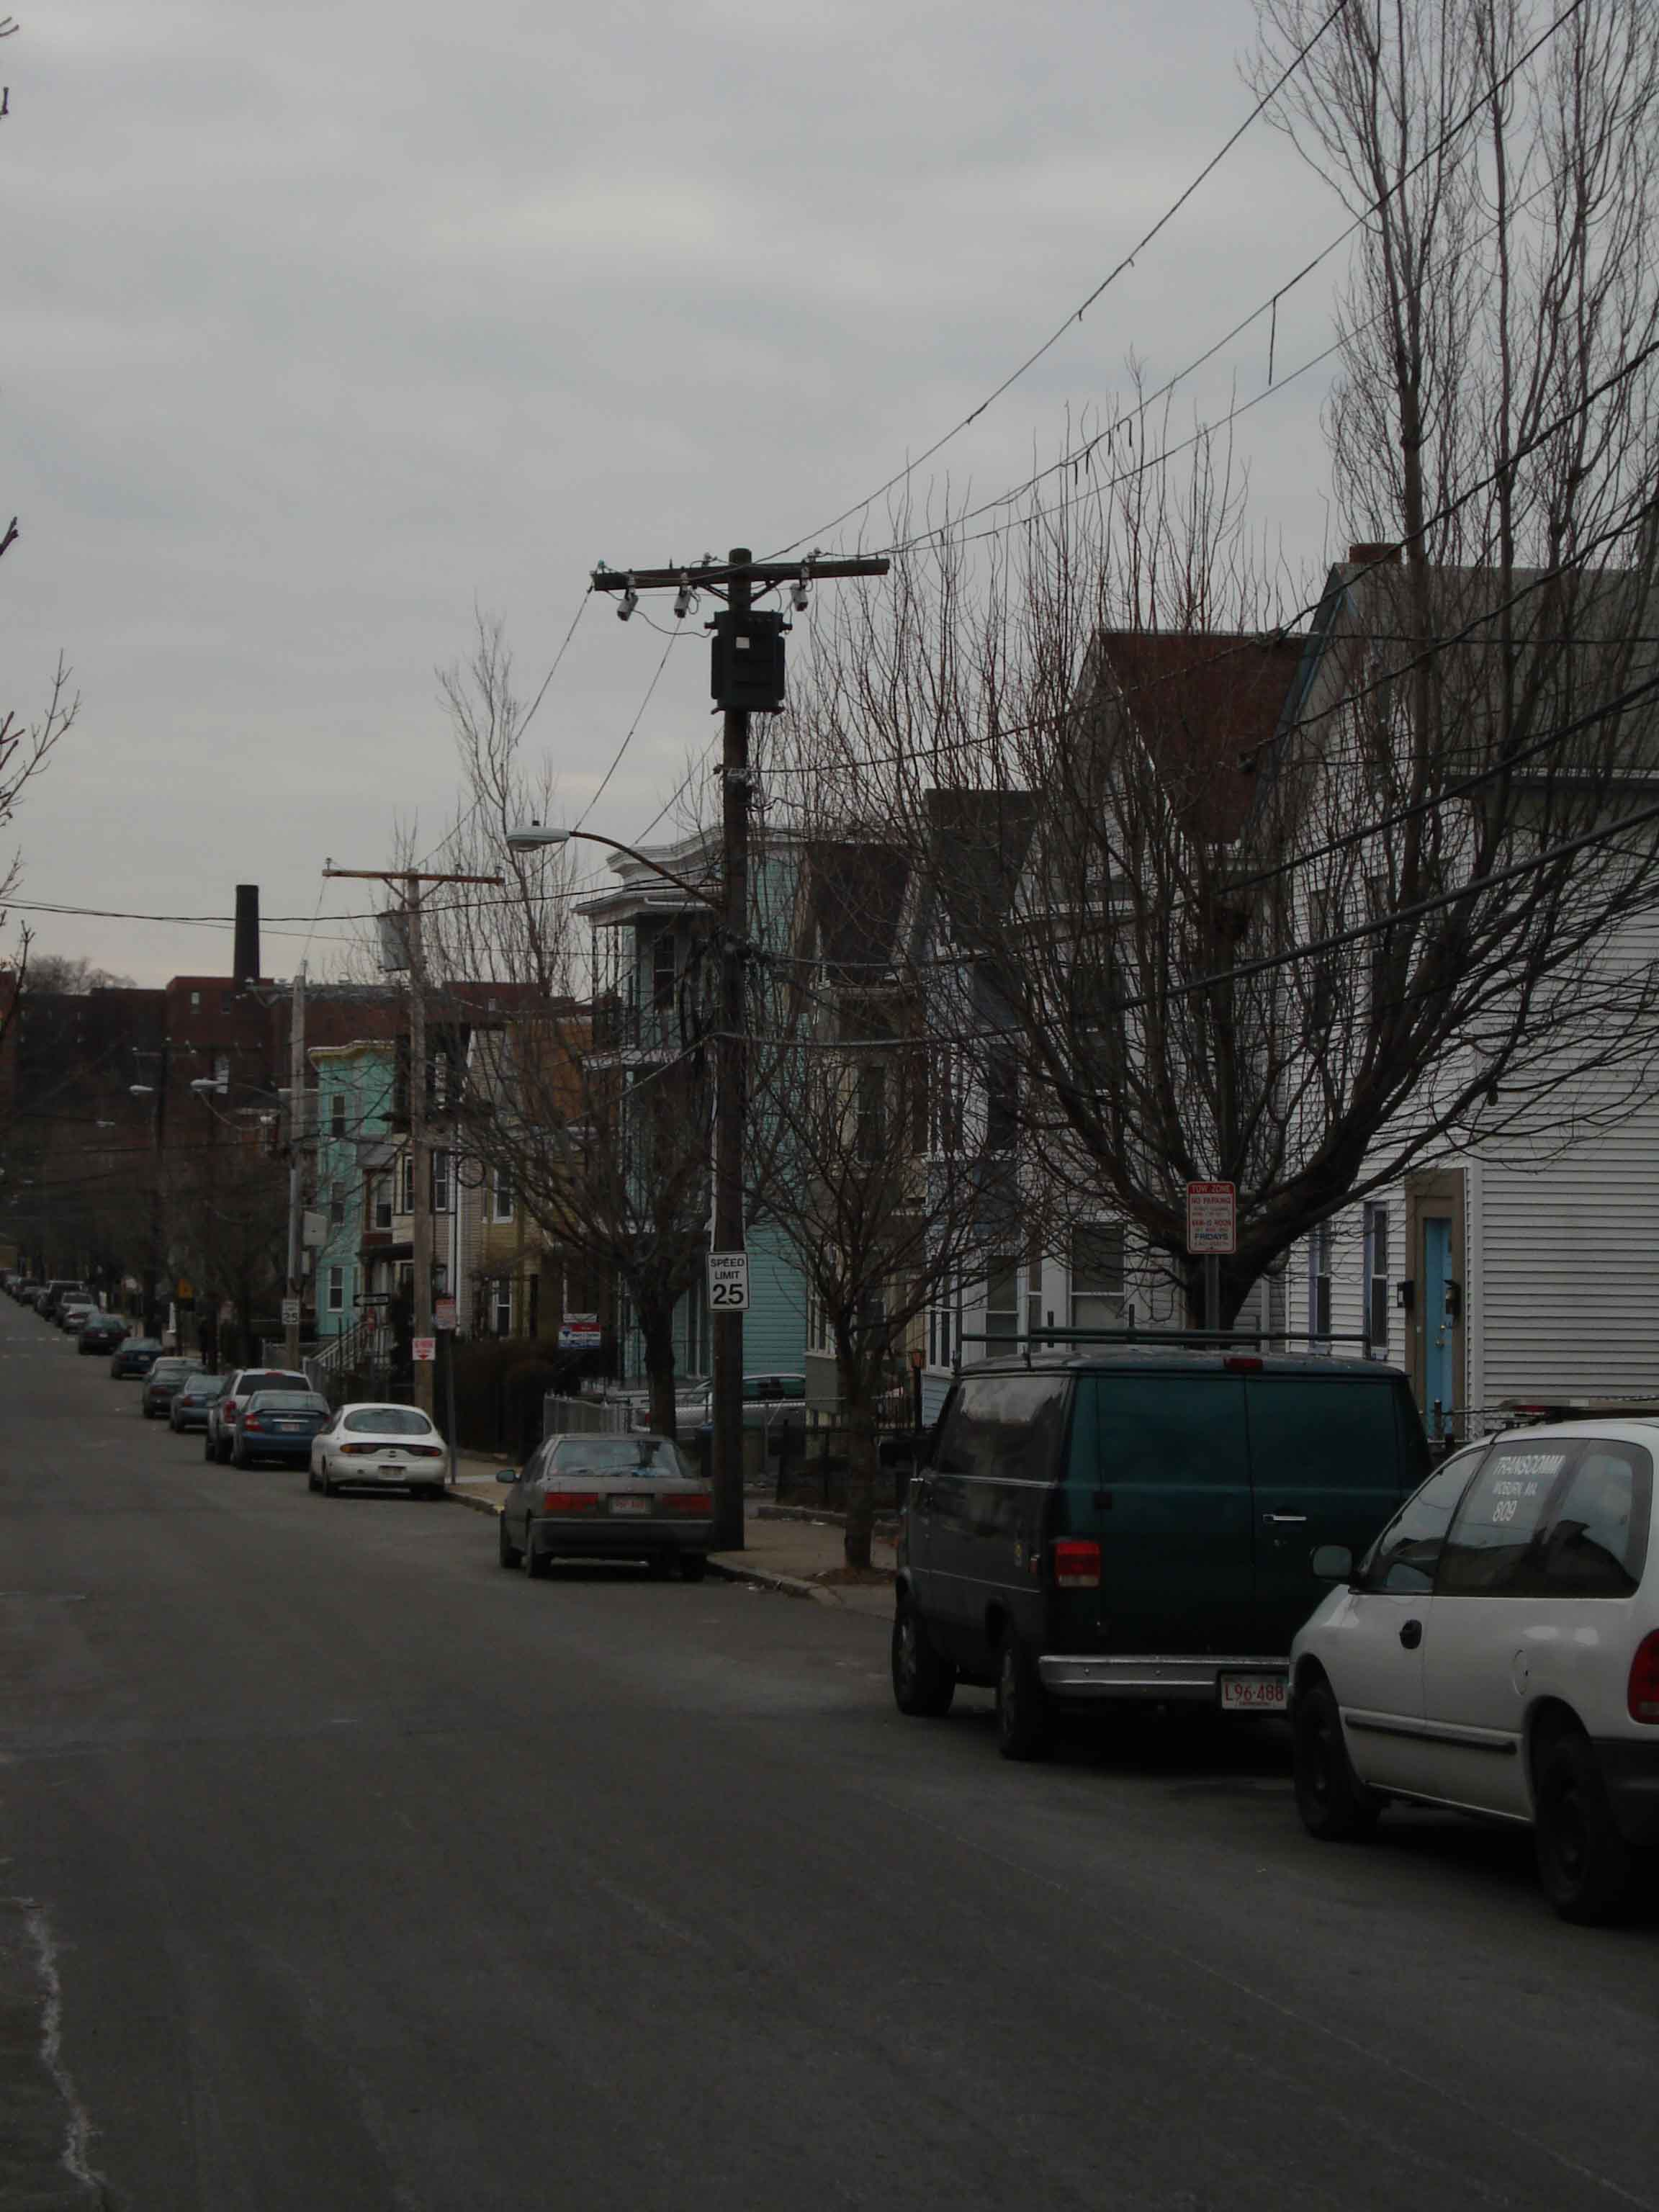 Marshall St. in Somerville, headquarters of the Winter Hill gang's Somerville faction